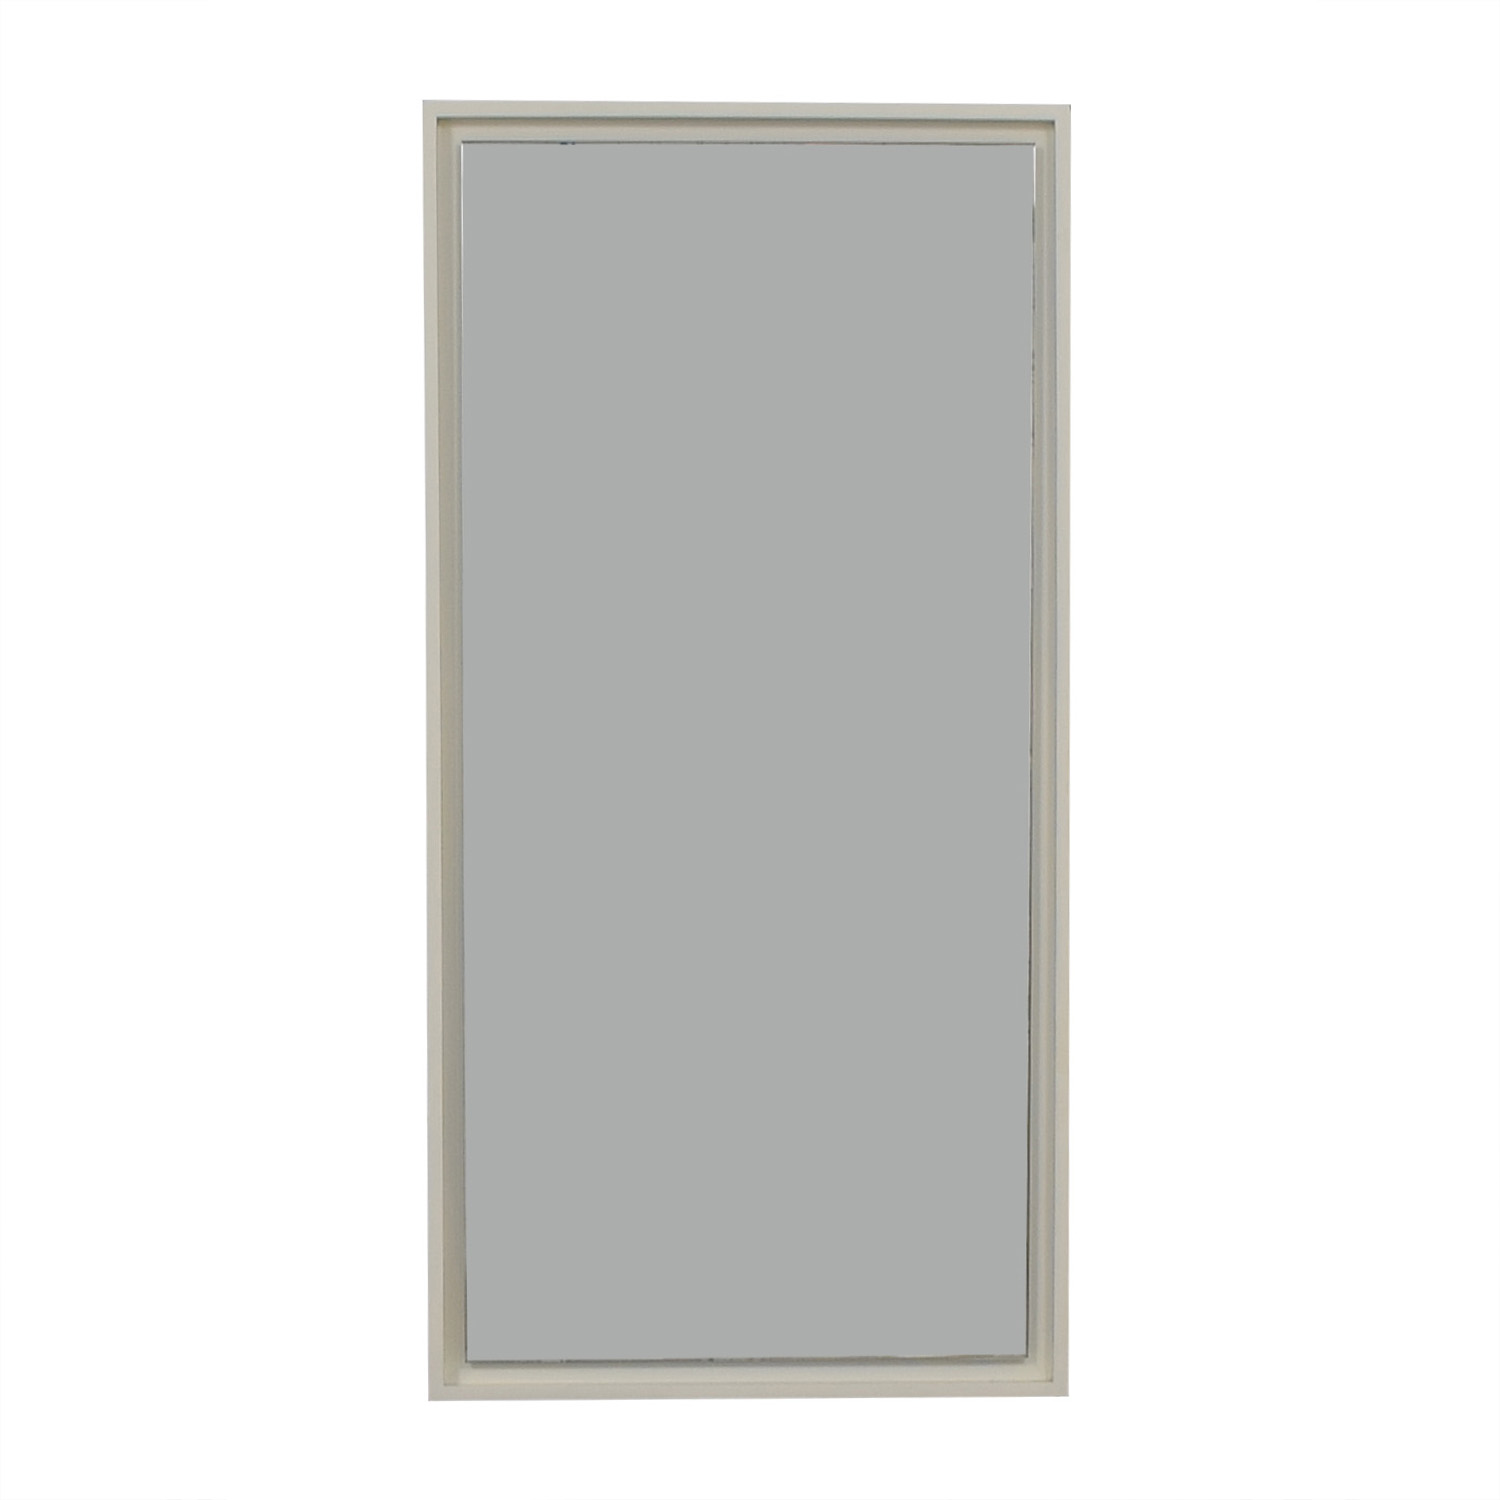 West Elm White Lacquer Floating Wood Wall Mirror